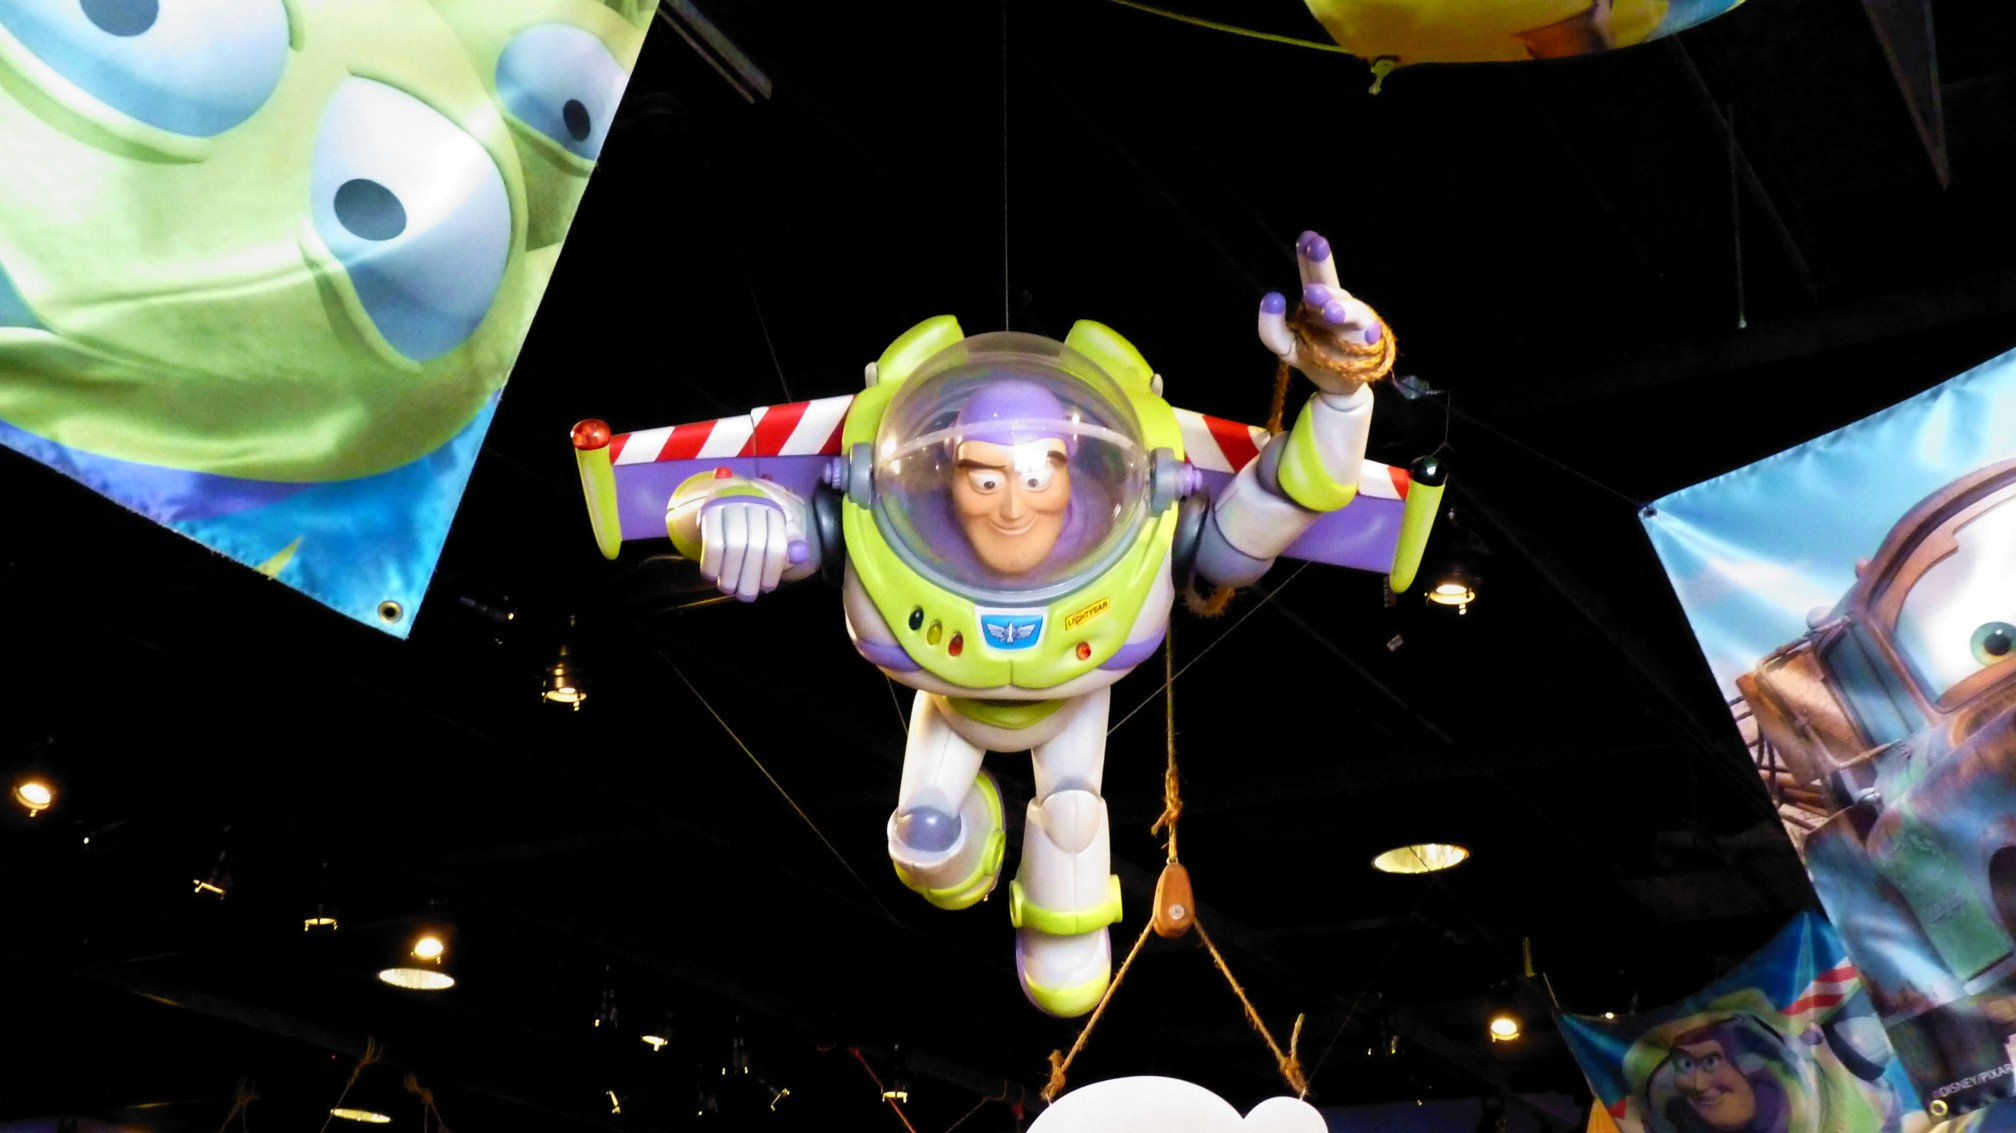 Jud's Disney Picture of the Day: FALLING WITH STYLE